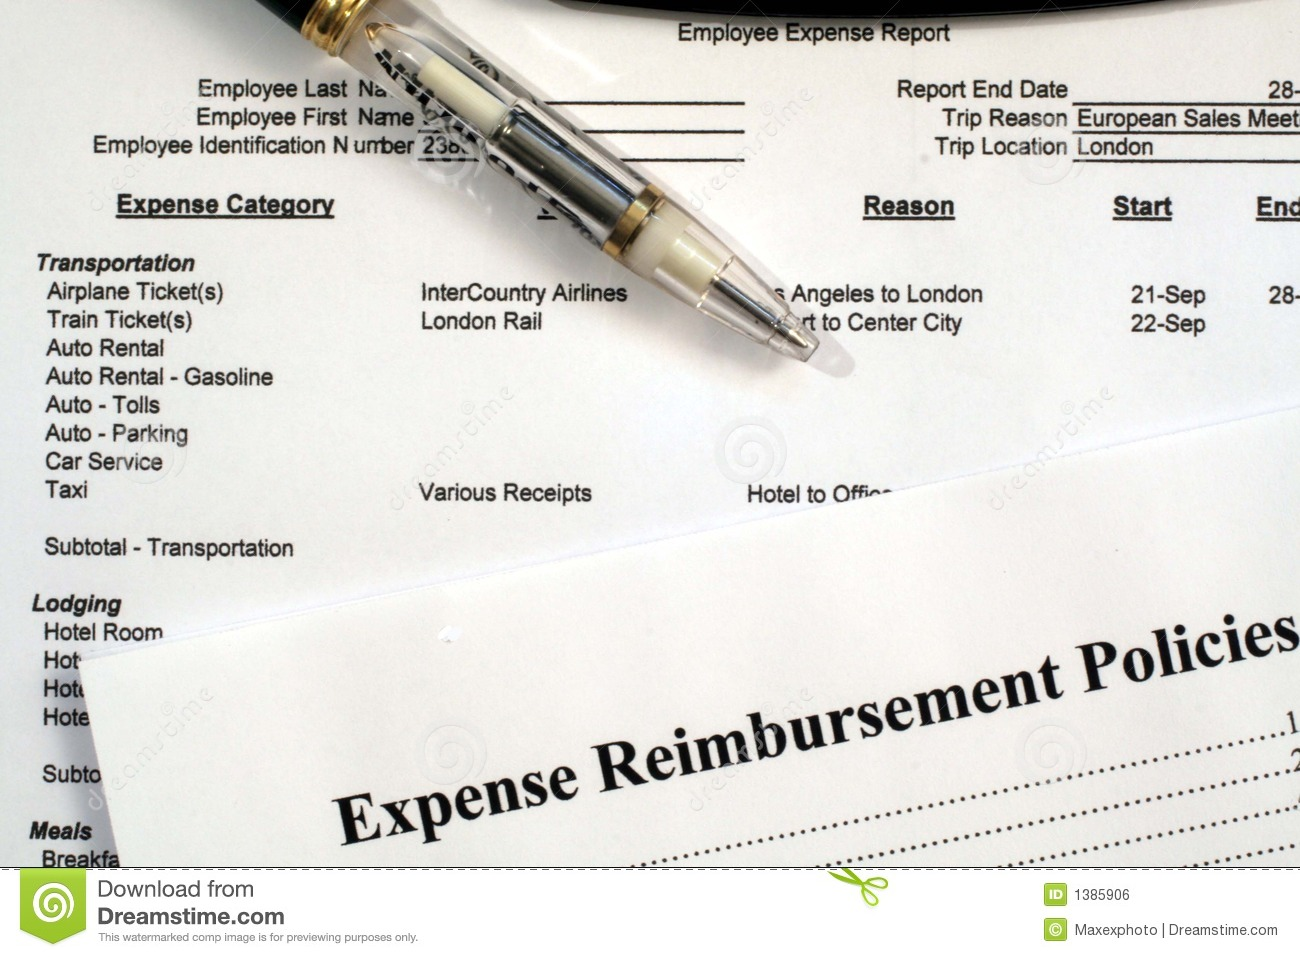 employee expense report expense reimbursement policies stock photo